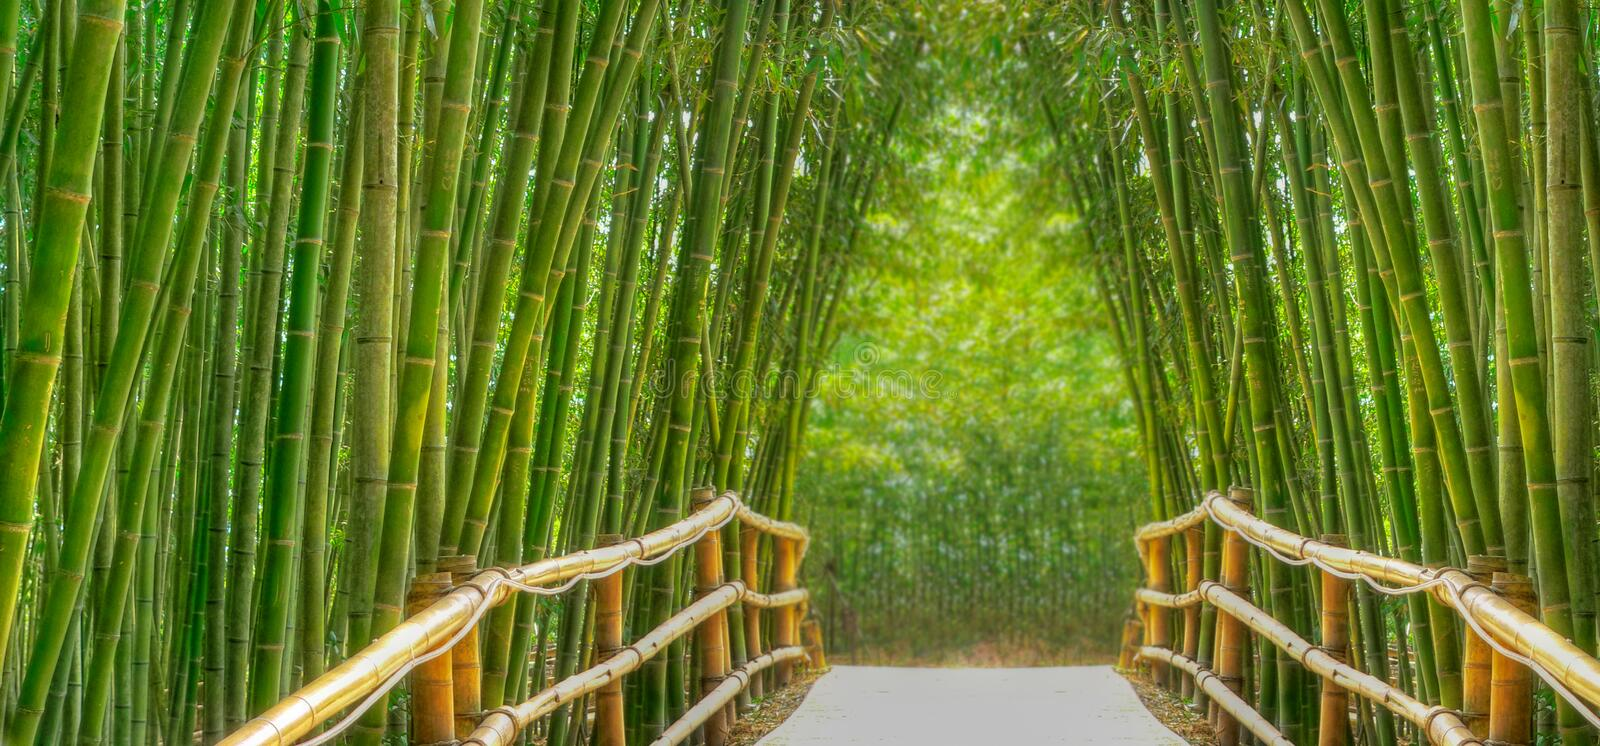 Bamboo Alley stock photo